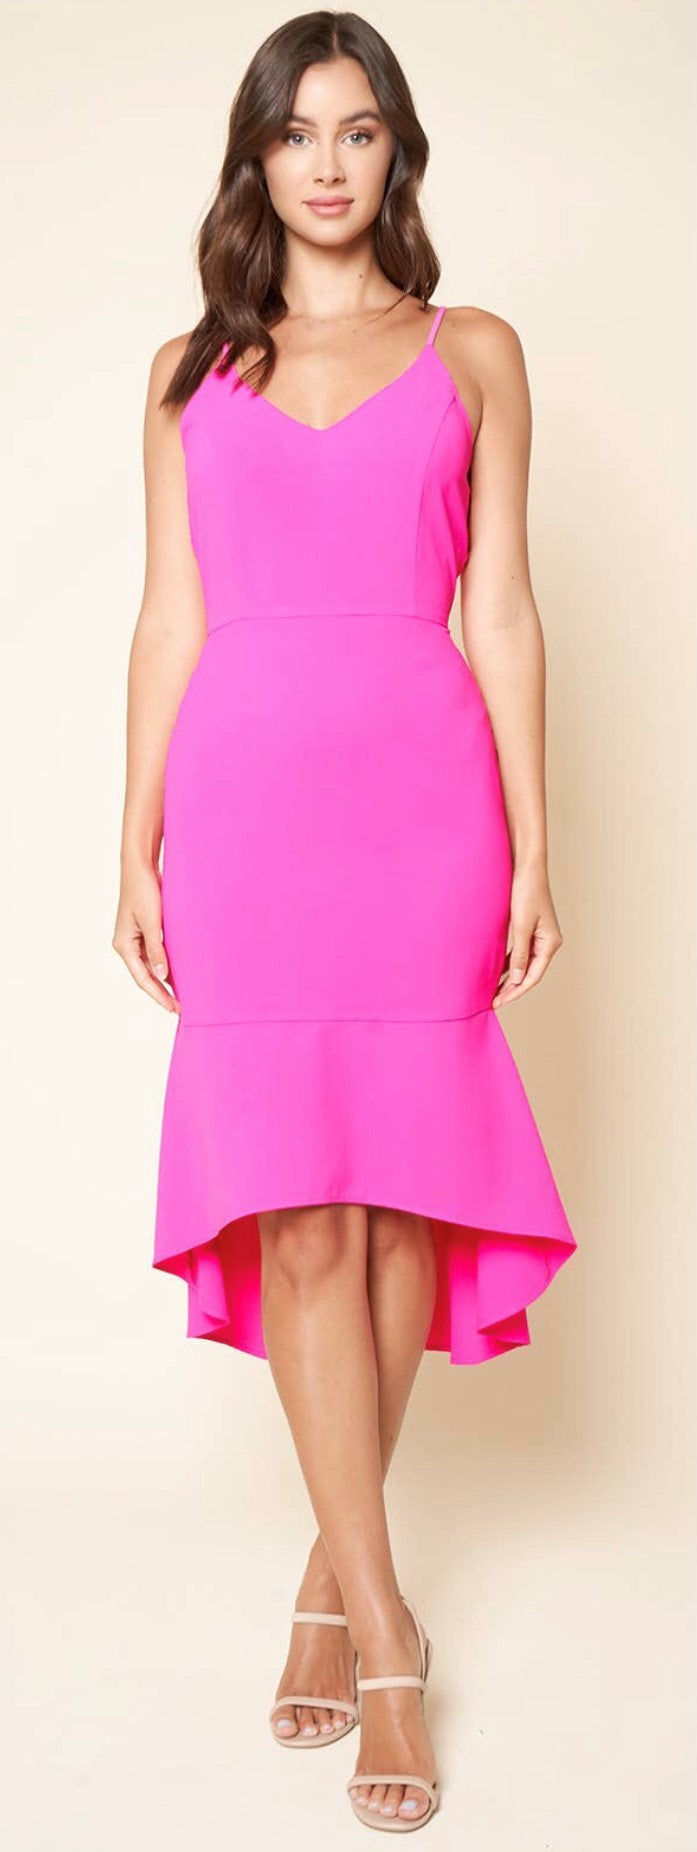 Pink Ruffle Dress Free Shipping